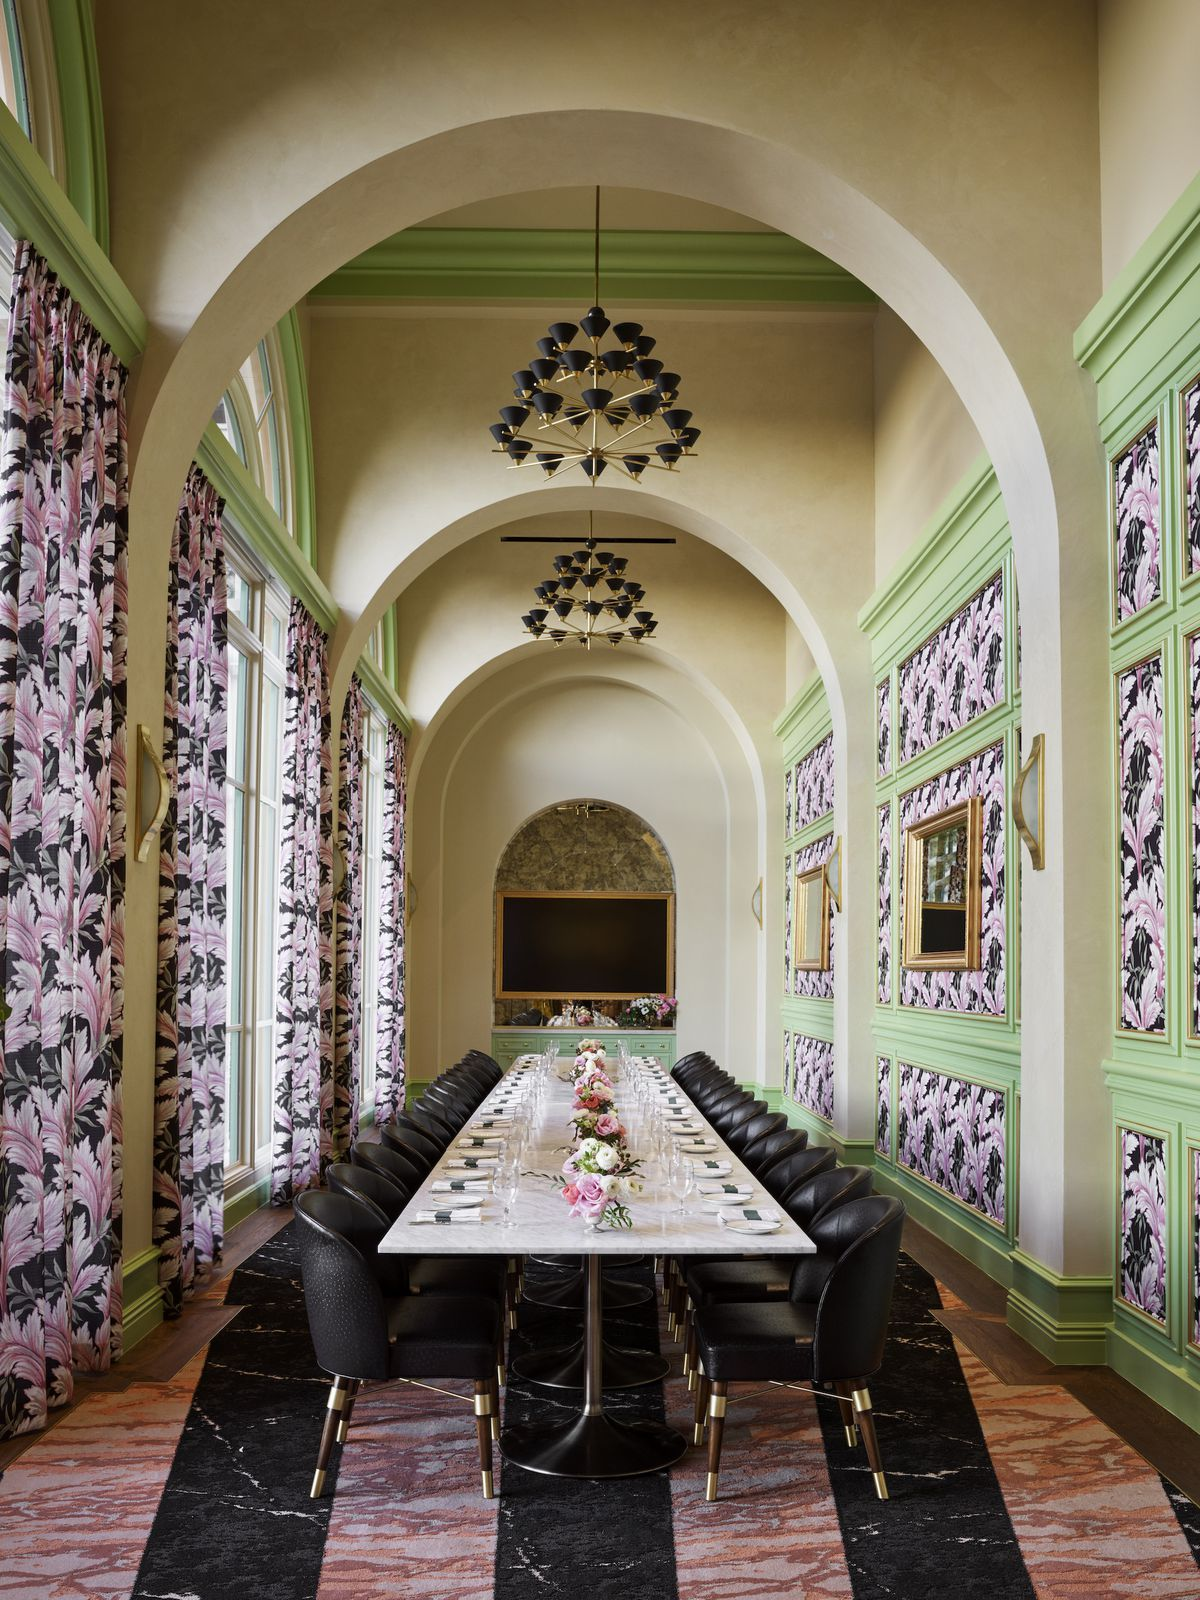 The private dining room at Sadelle's